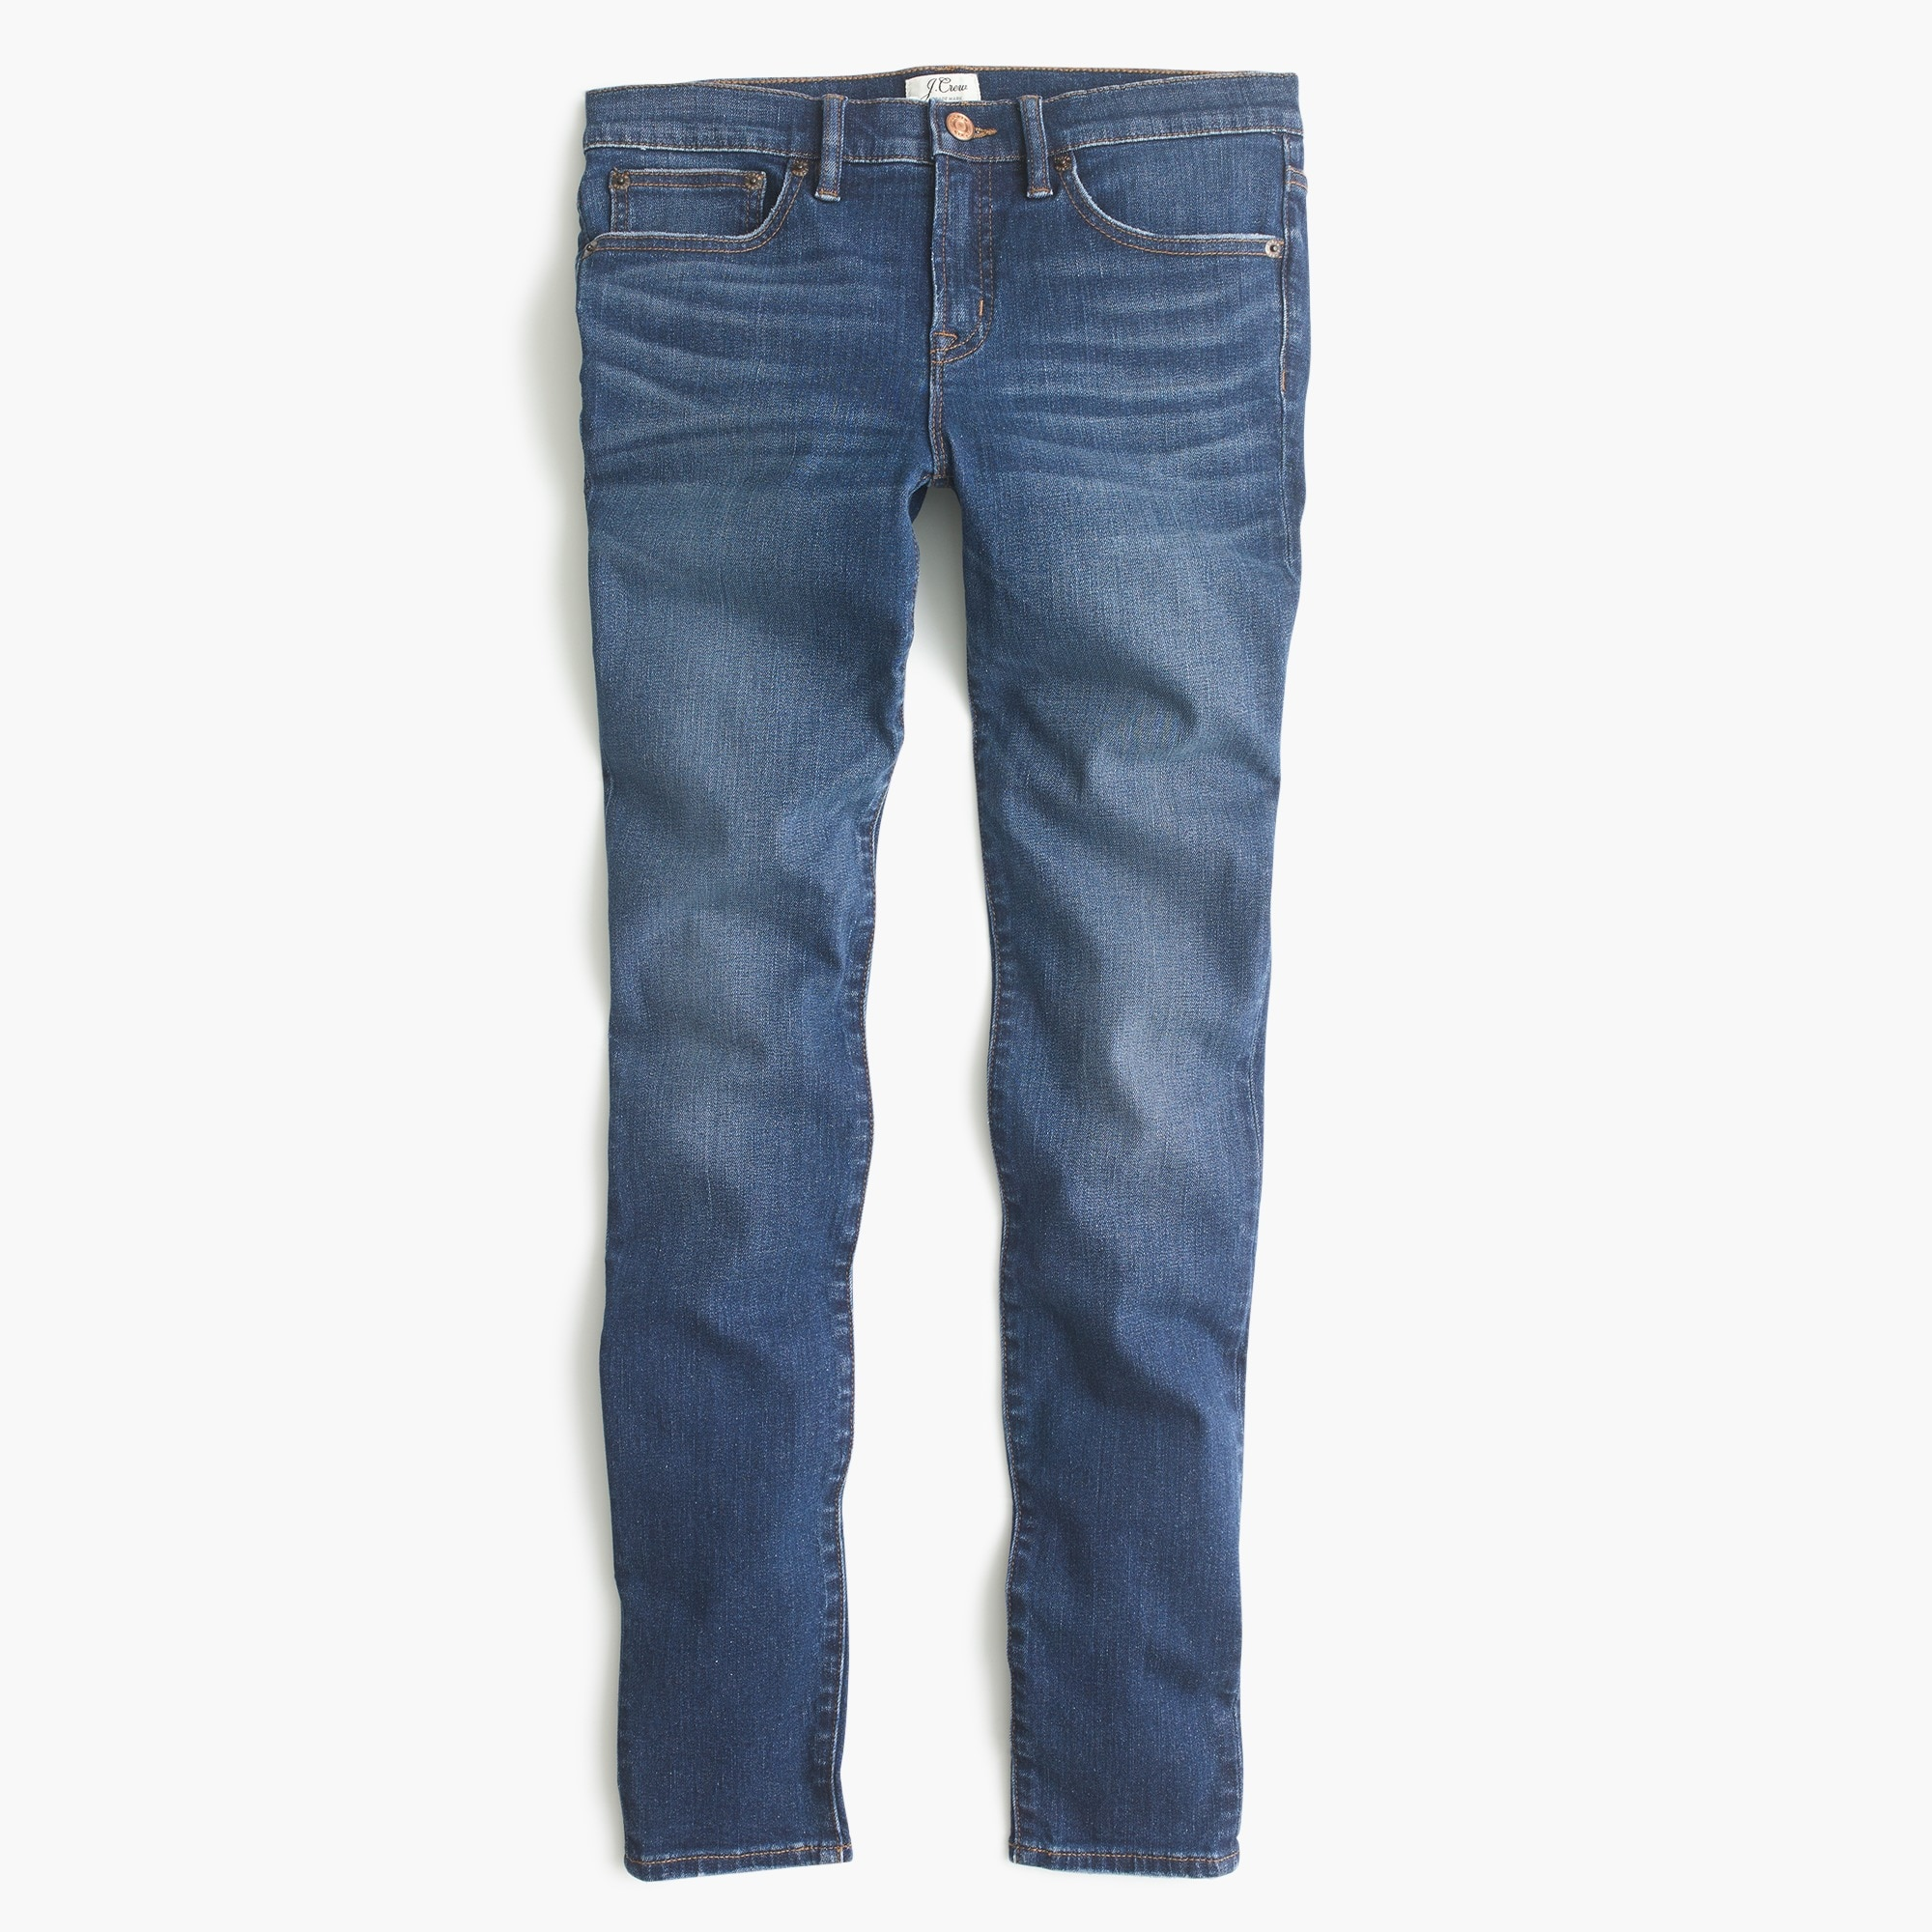 "8"" stretchy toothpick jean in Lyric wash"